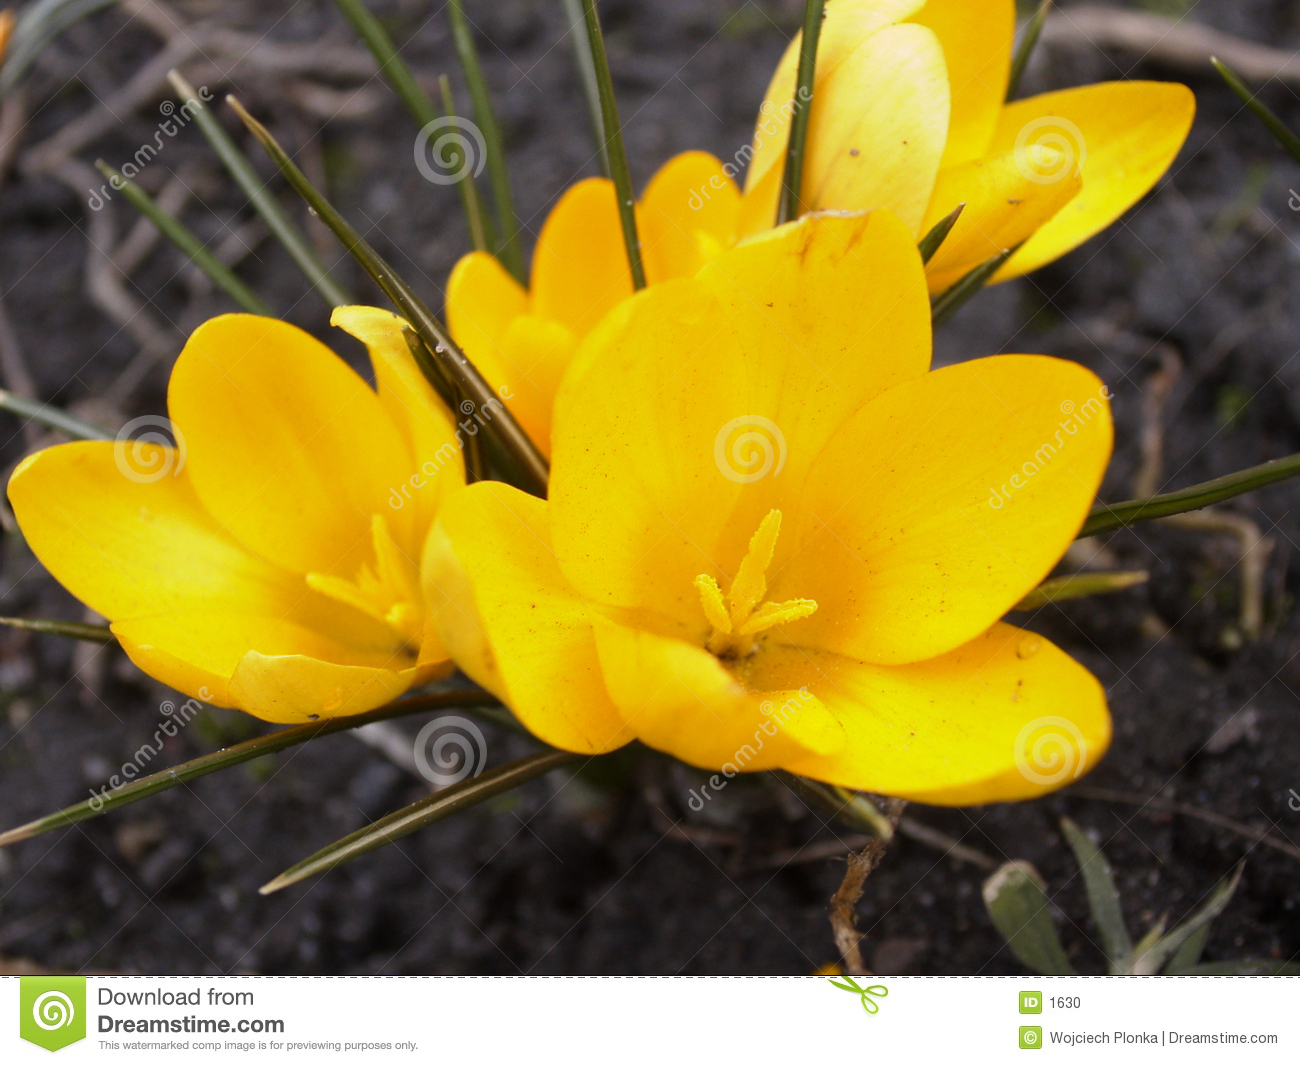 Yellow crocus - Spring is coming #4